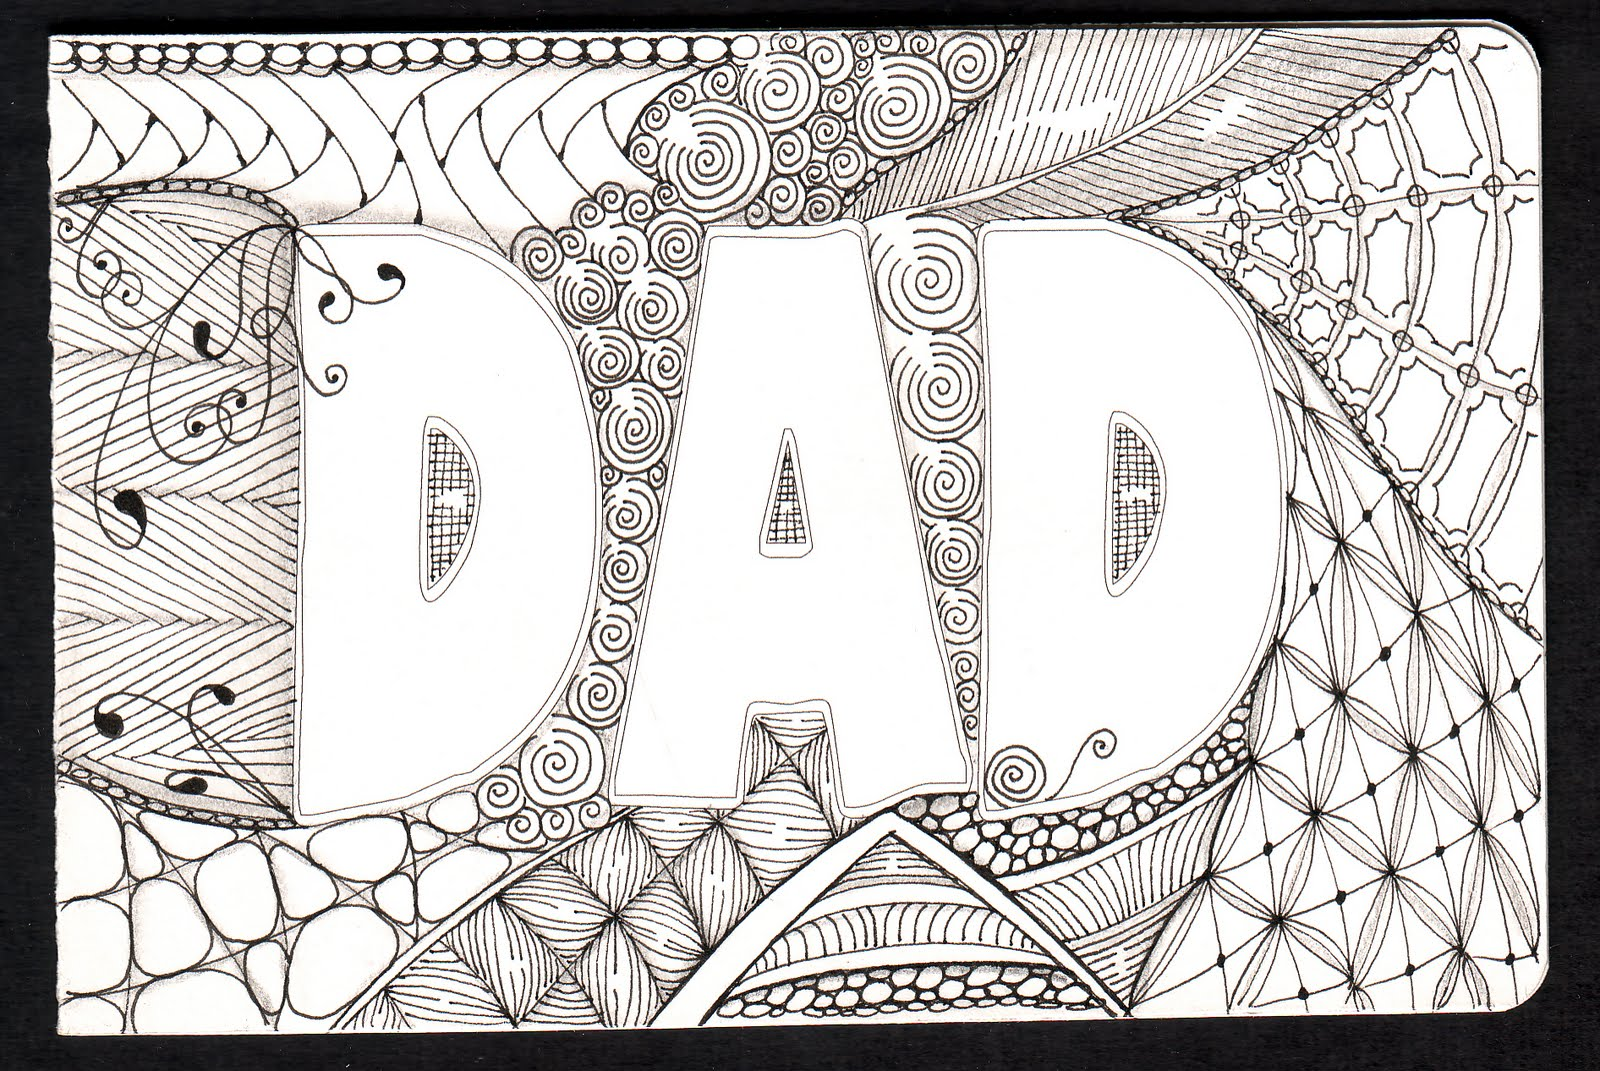 Birthday card ideas for dad from daughter birthday card ideas birthday card ideas for dad from daughter 2016 m4hsunfo